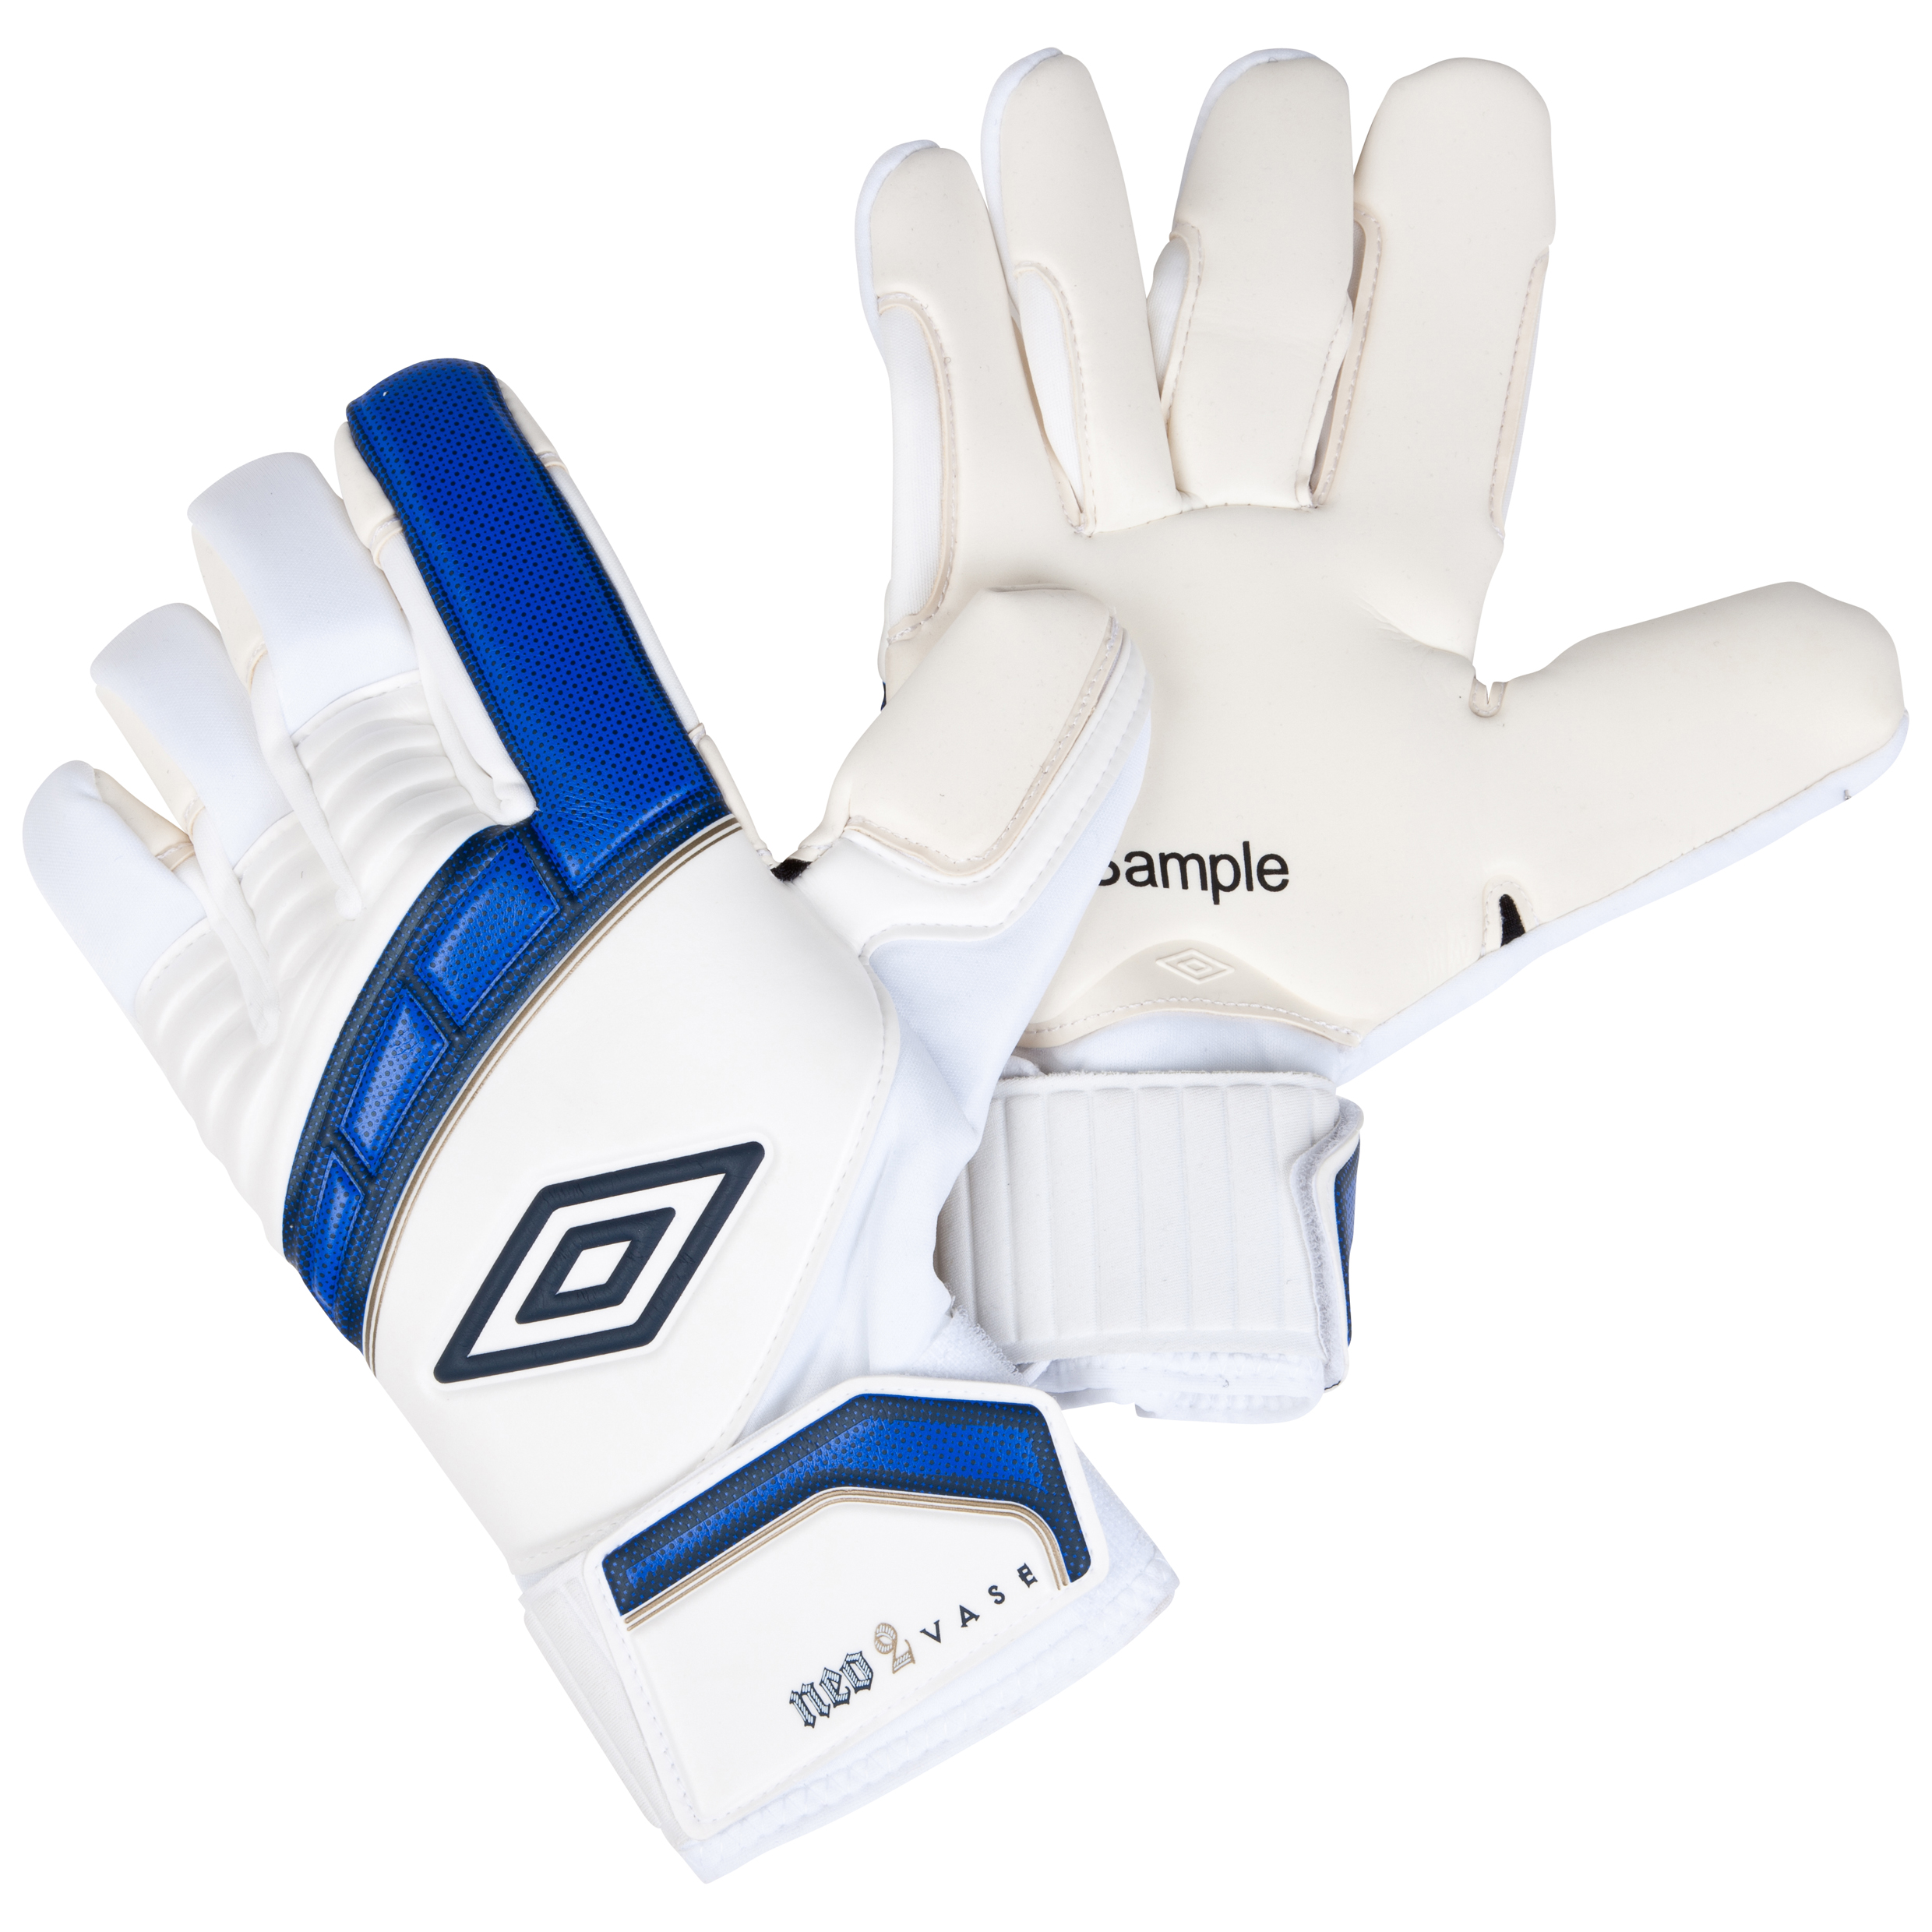 Umbro Neo Vase Goalkeeper Gloves-White / Twilight Blue / Gold